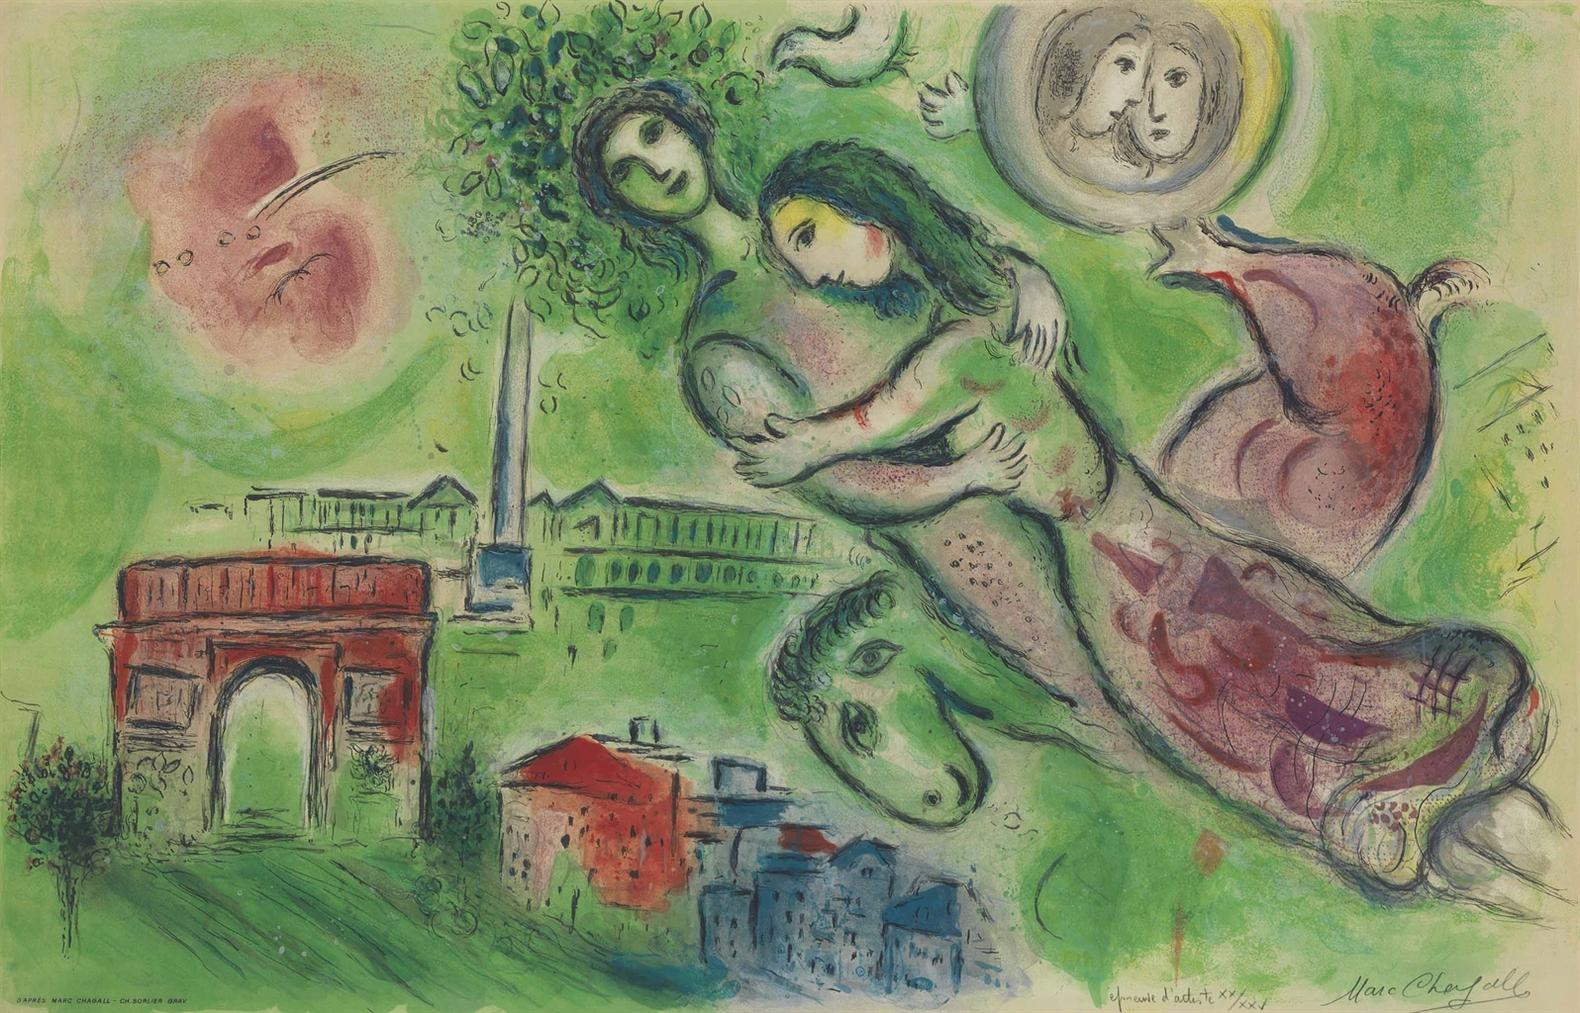 After Marc Chagall - Romeo And Juliet-1964